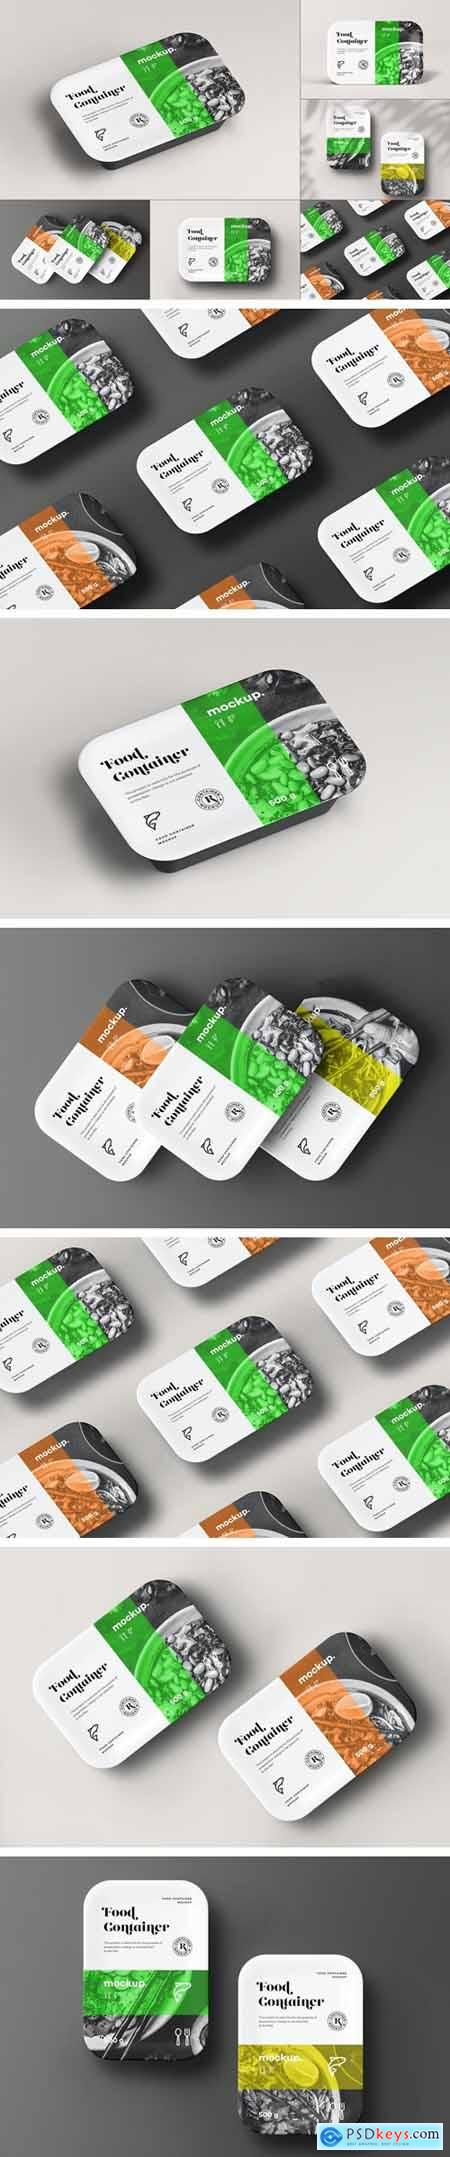 Food Container Mock-up 31535682